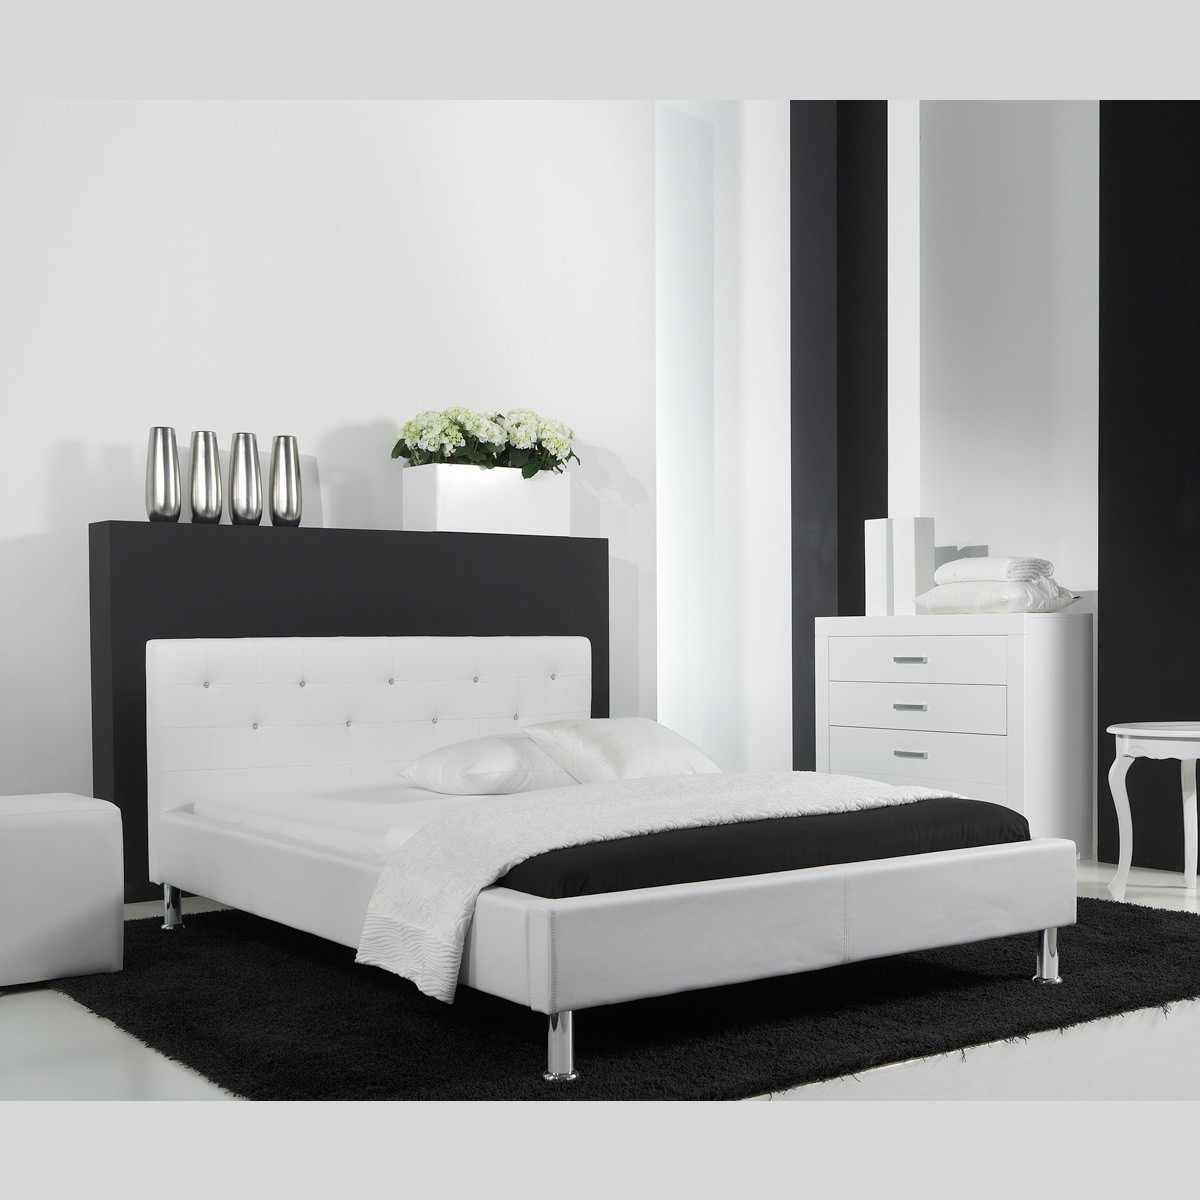 polsterbett kunstlederbett bett 140x200 in wei mit. Black Bedroom Furniture Sets. Home Design Ideas